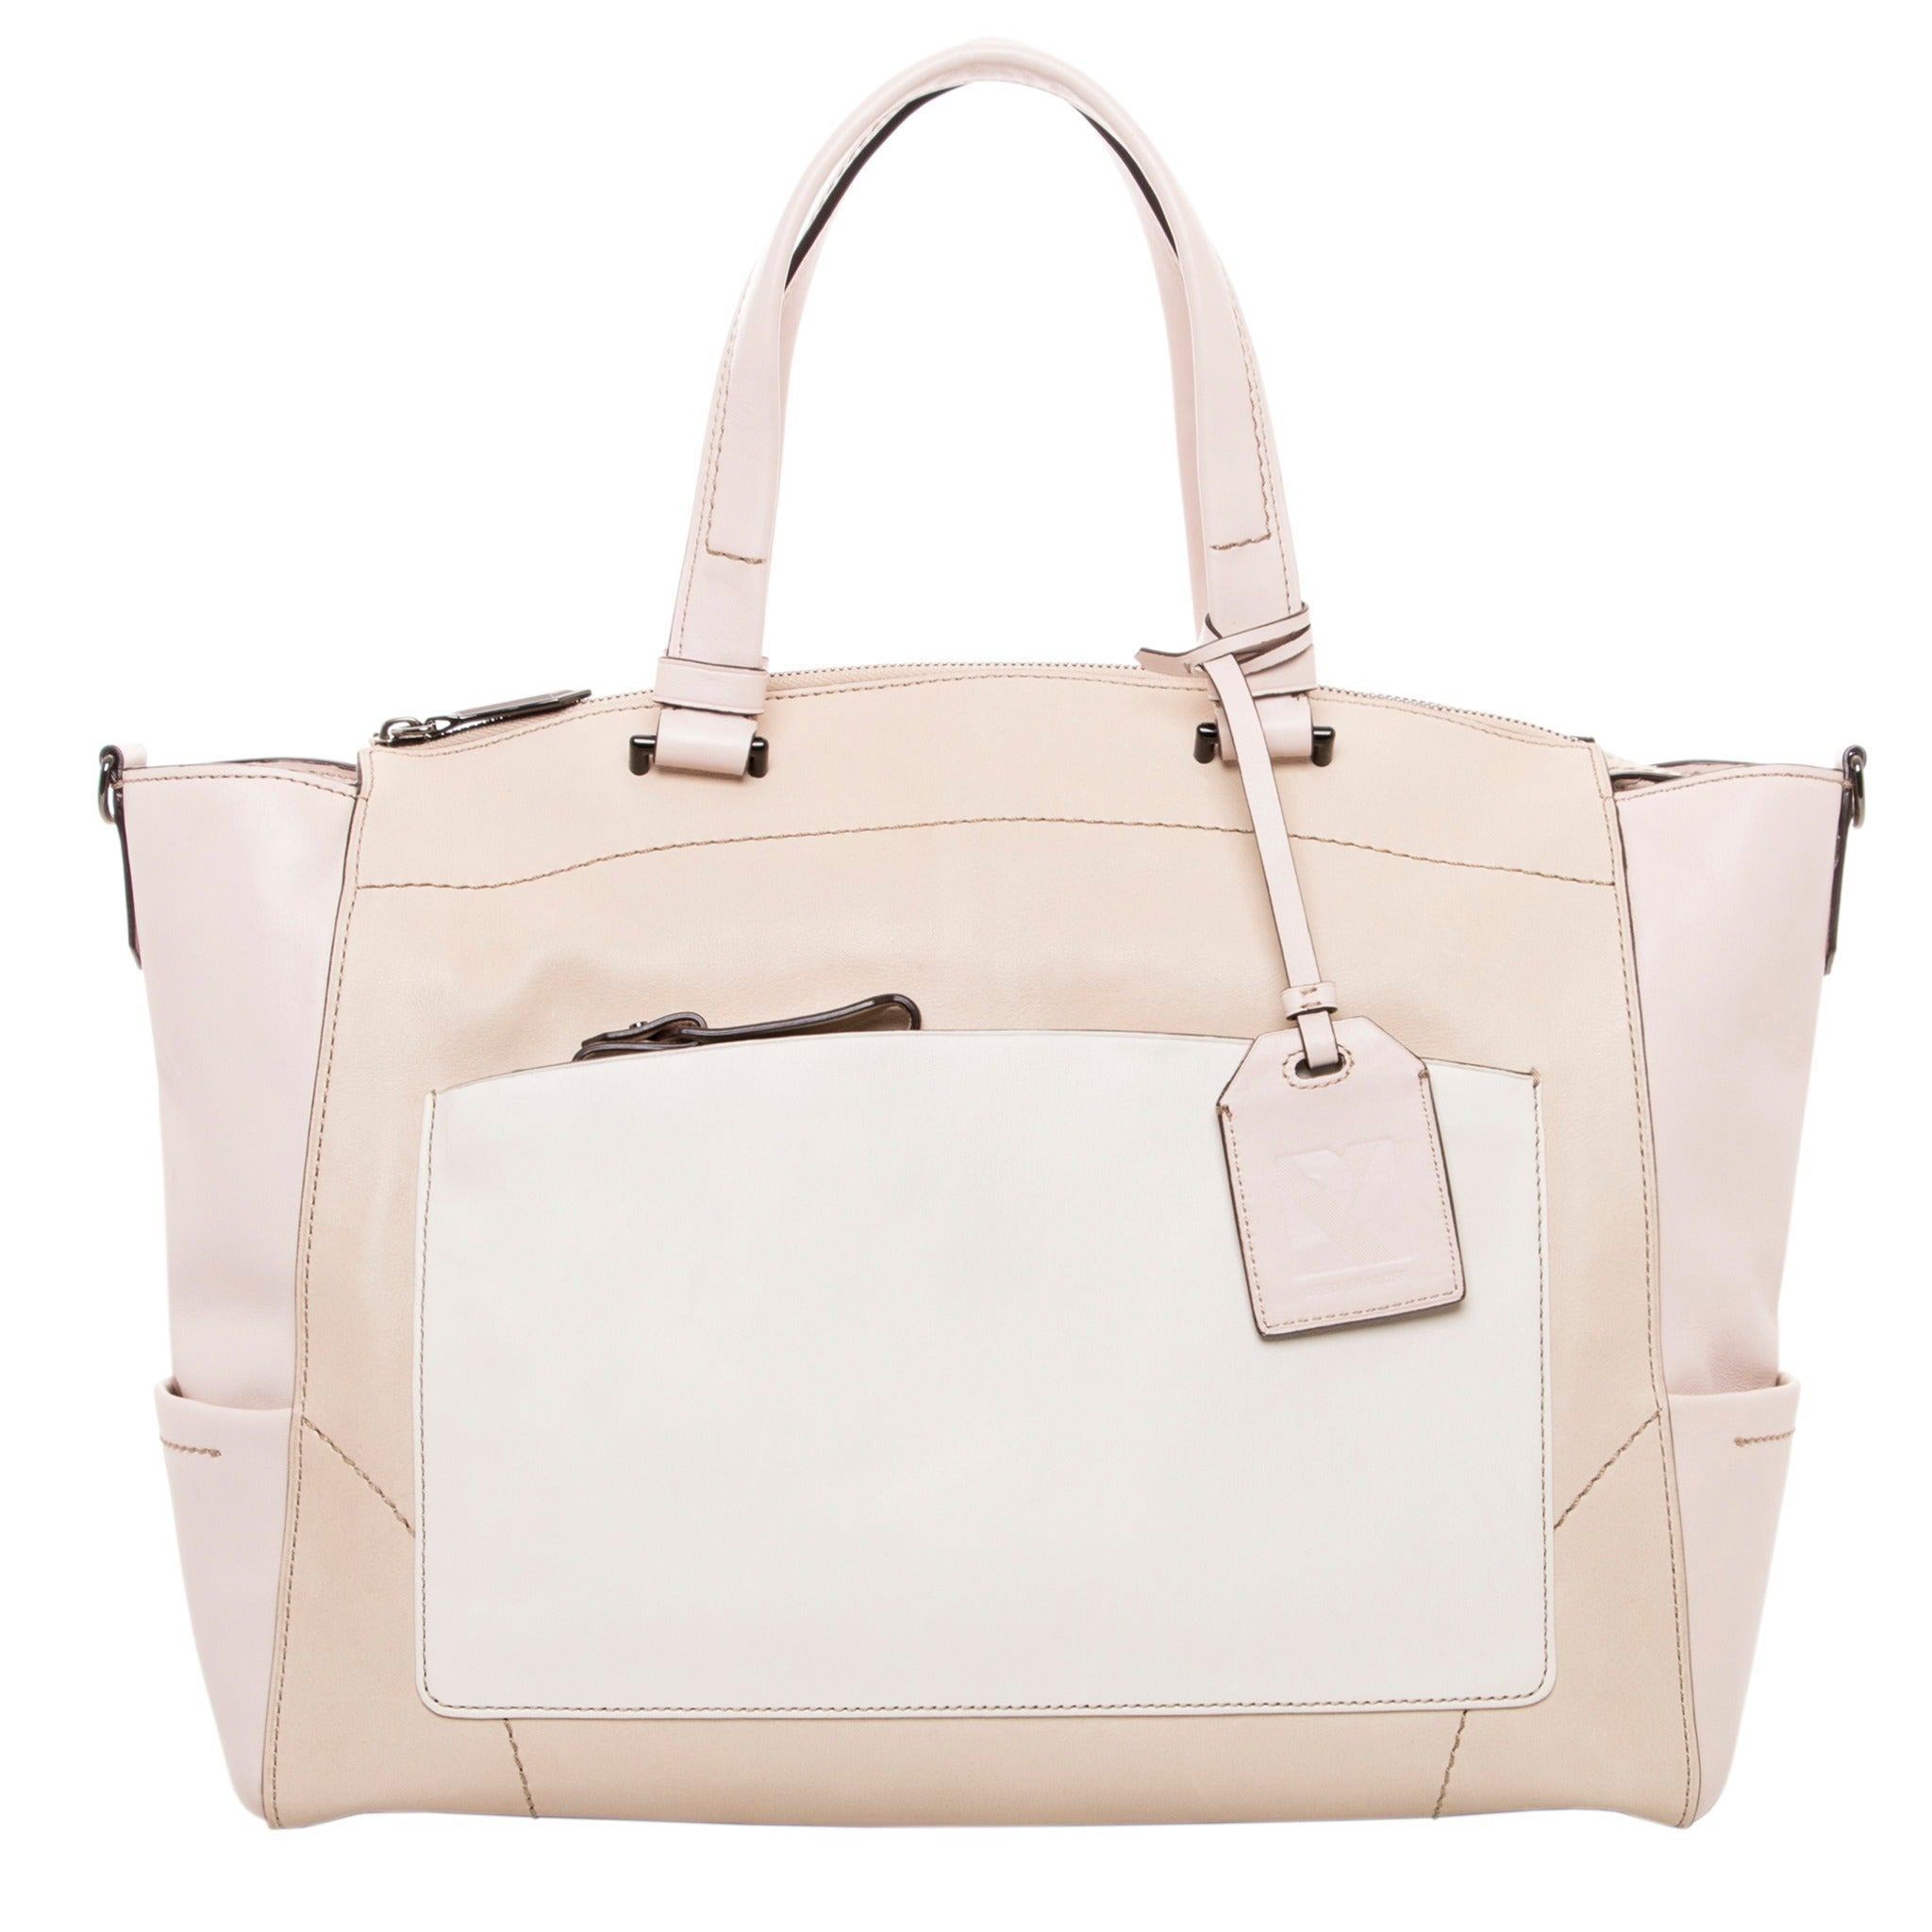 5d556cafd236 Shop Reed Krakoff Soft Colorblocked Leather Tote Bag - Free Shipping Today  - Overstock.com - 8969724